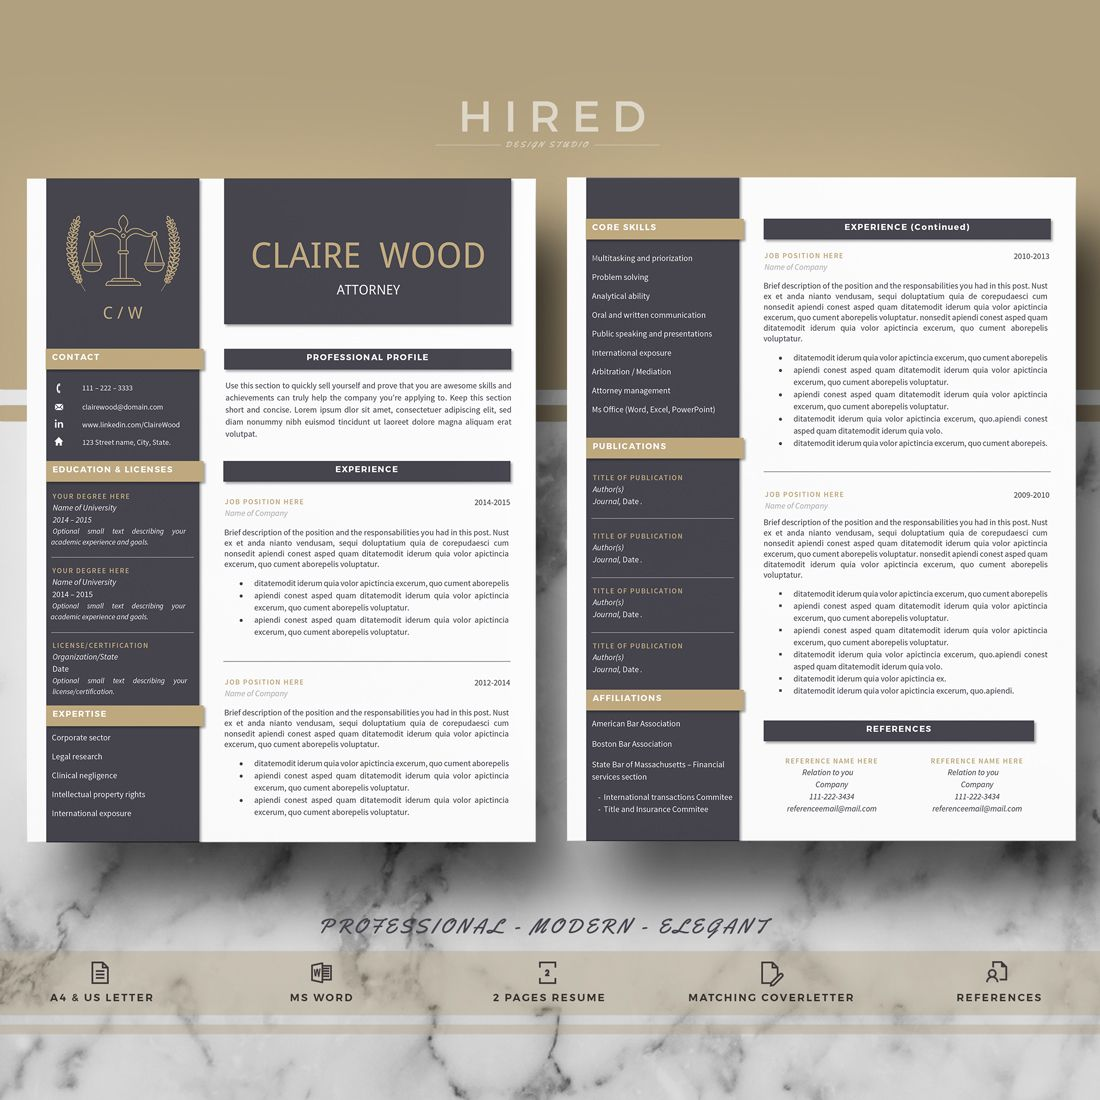 resume template for ms word - Microsoft Word Resume Template 2013 2